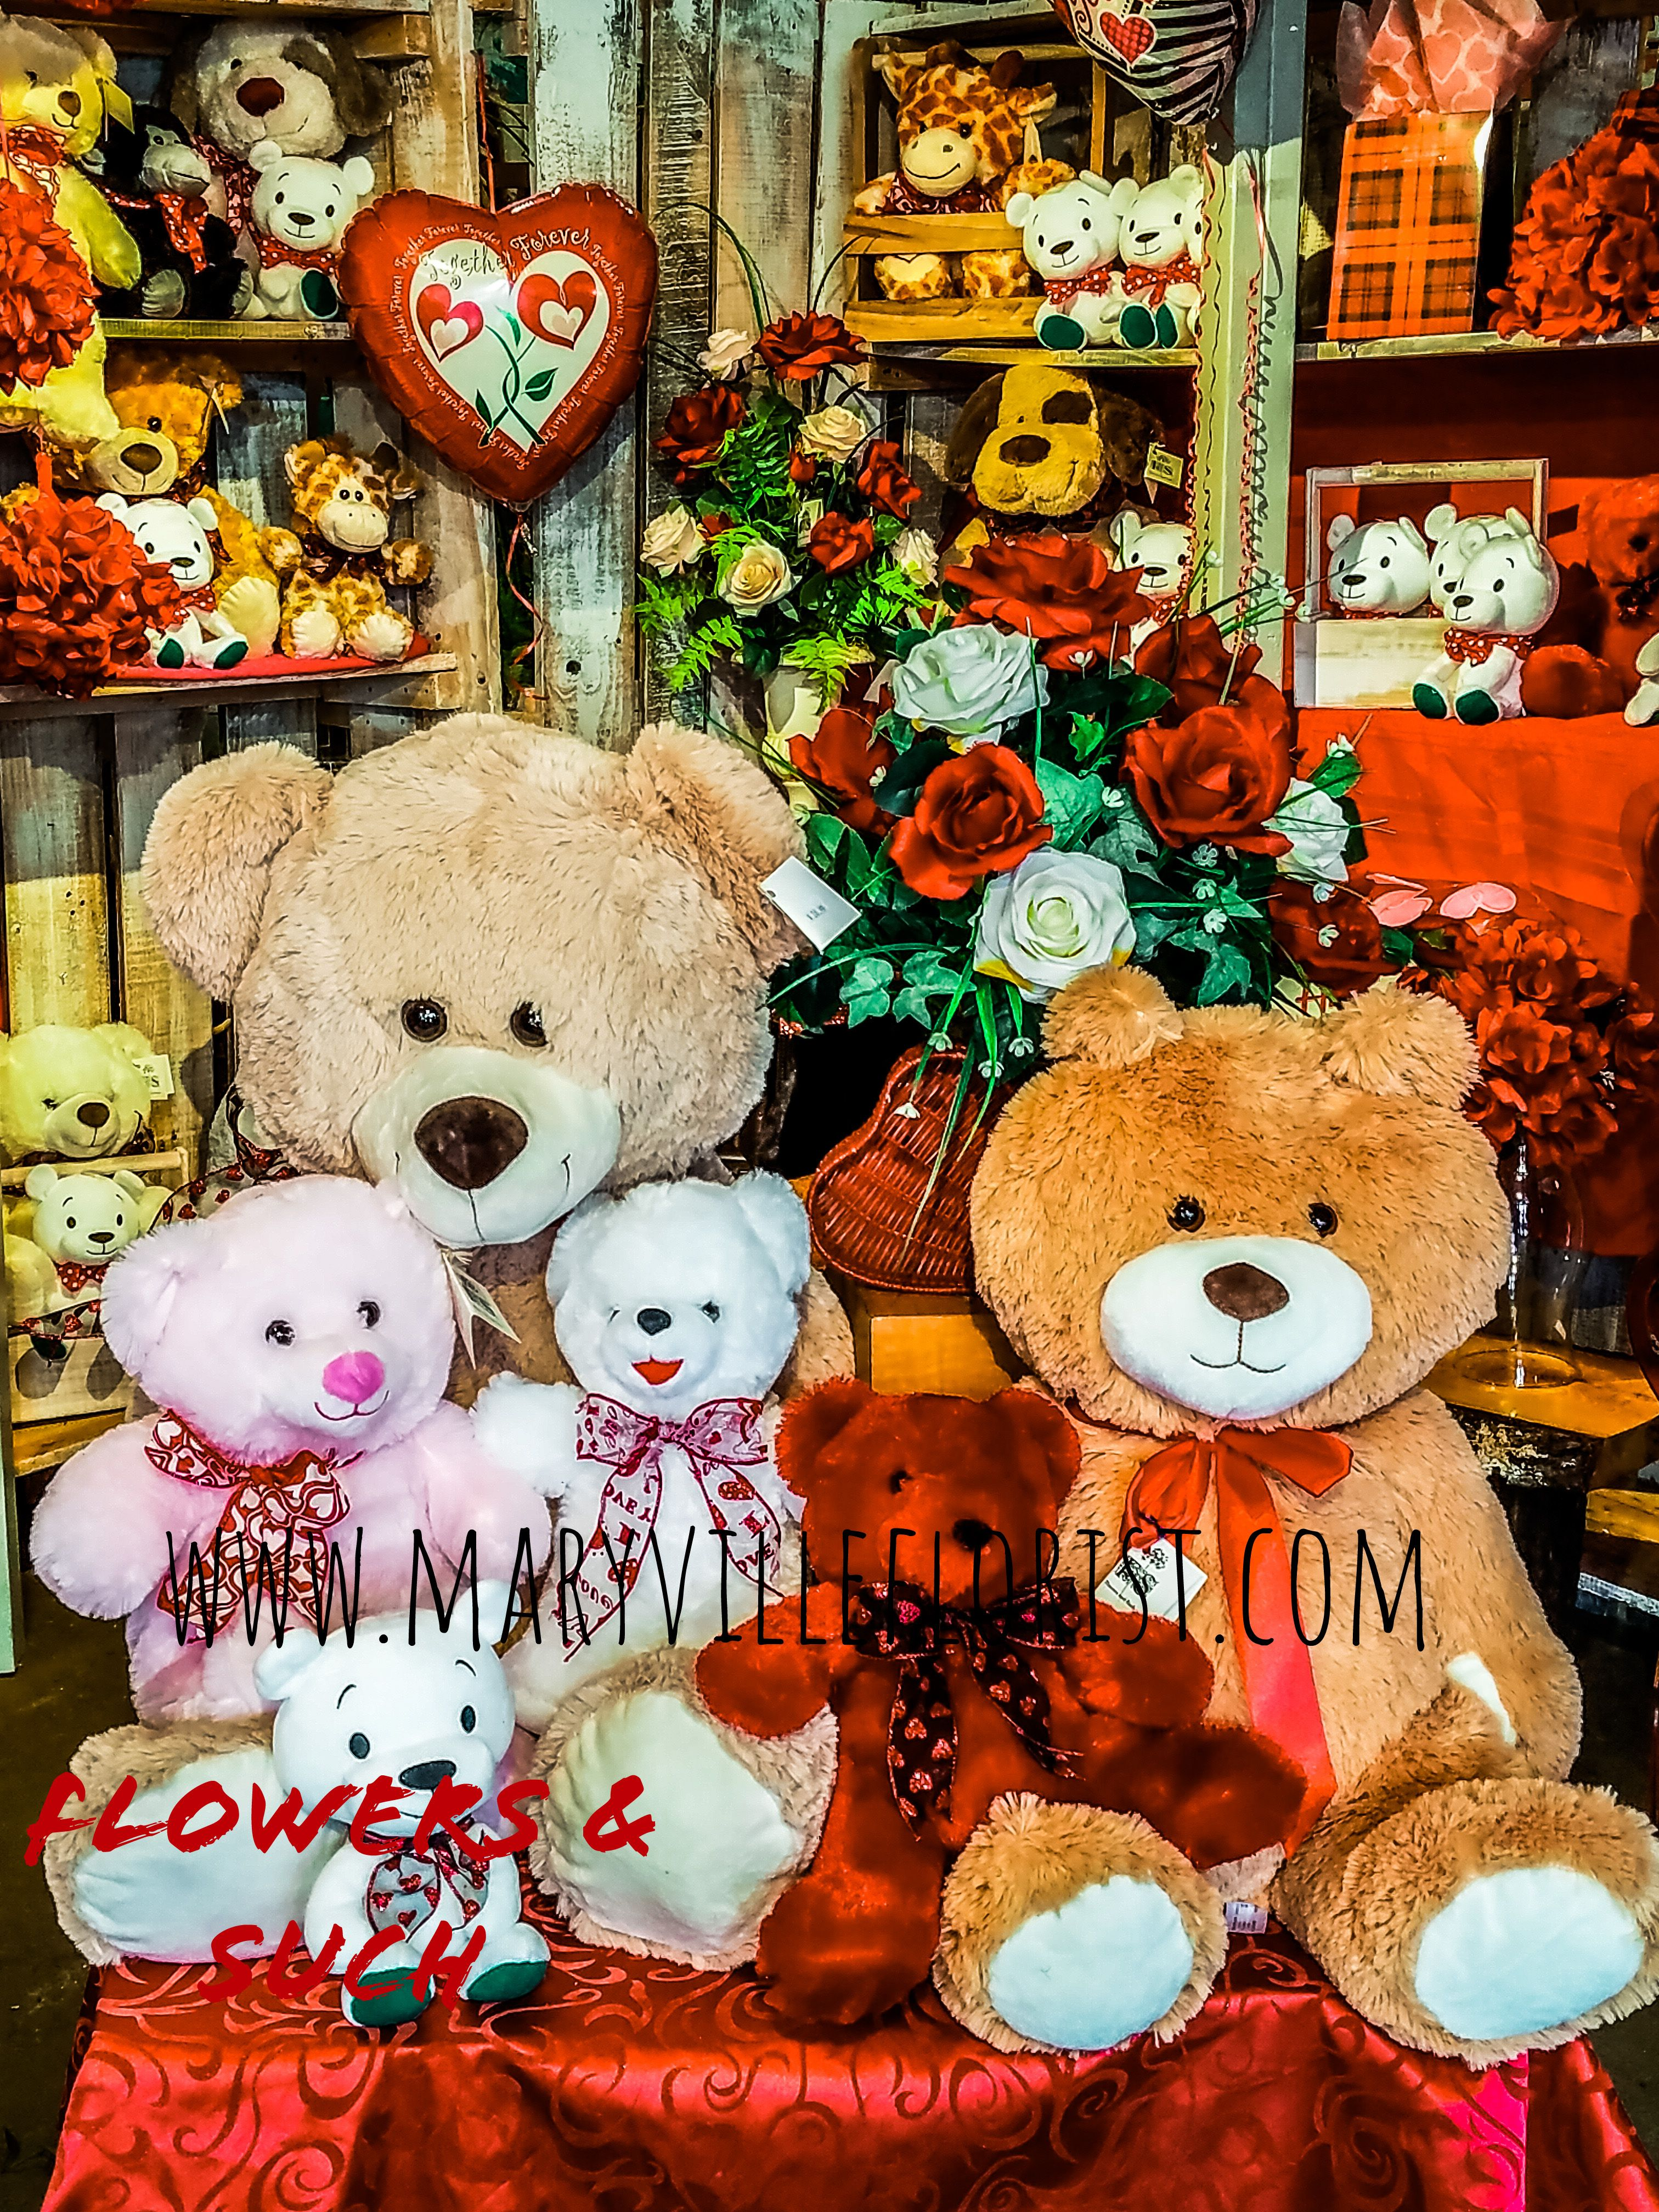 1 day to go this Romantic Valentine's Day. Let our cute